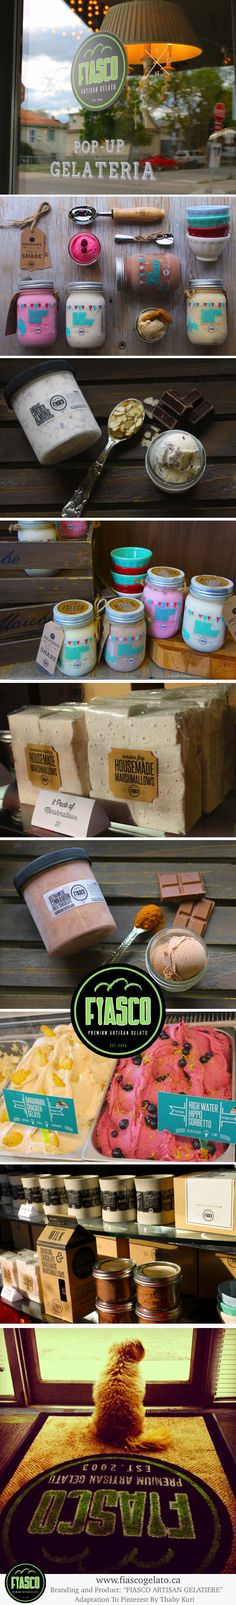 FIASCO / PRODUCT AND BRANDING Premium Artisan Gelatiere. #branding #packaging PD